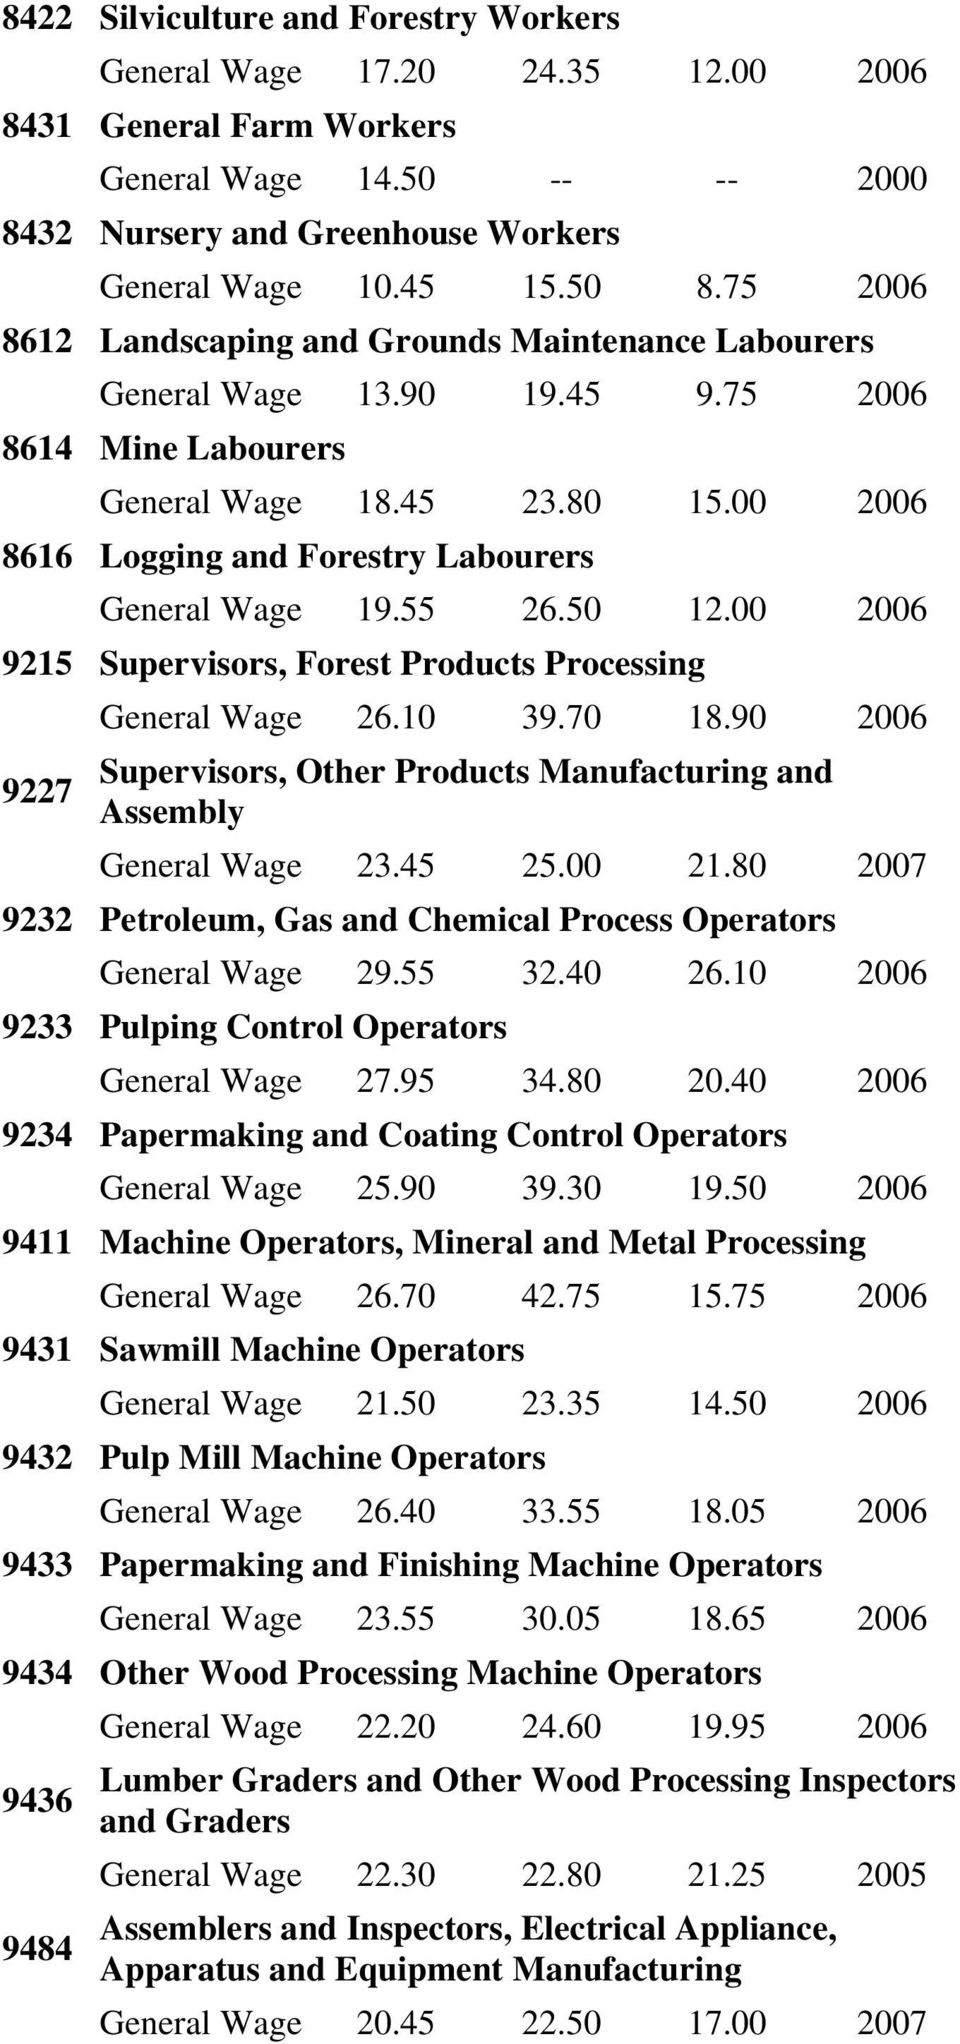 00 2006 8616 Logging and Forestry Labourers General Wage 19.55 26.50 12.00 2006 9215 Supervisors, Forest Products Processing 9227 General Wage 26.10 39.70 18.